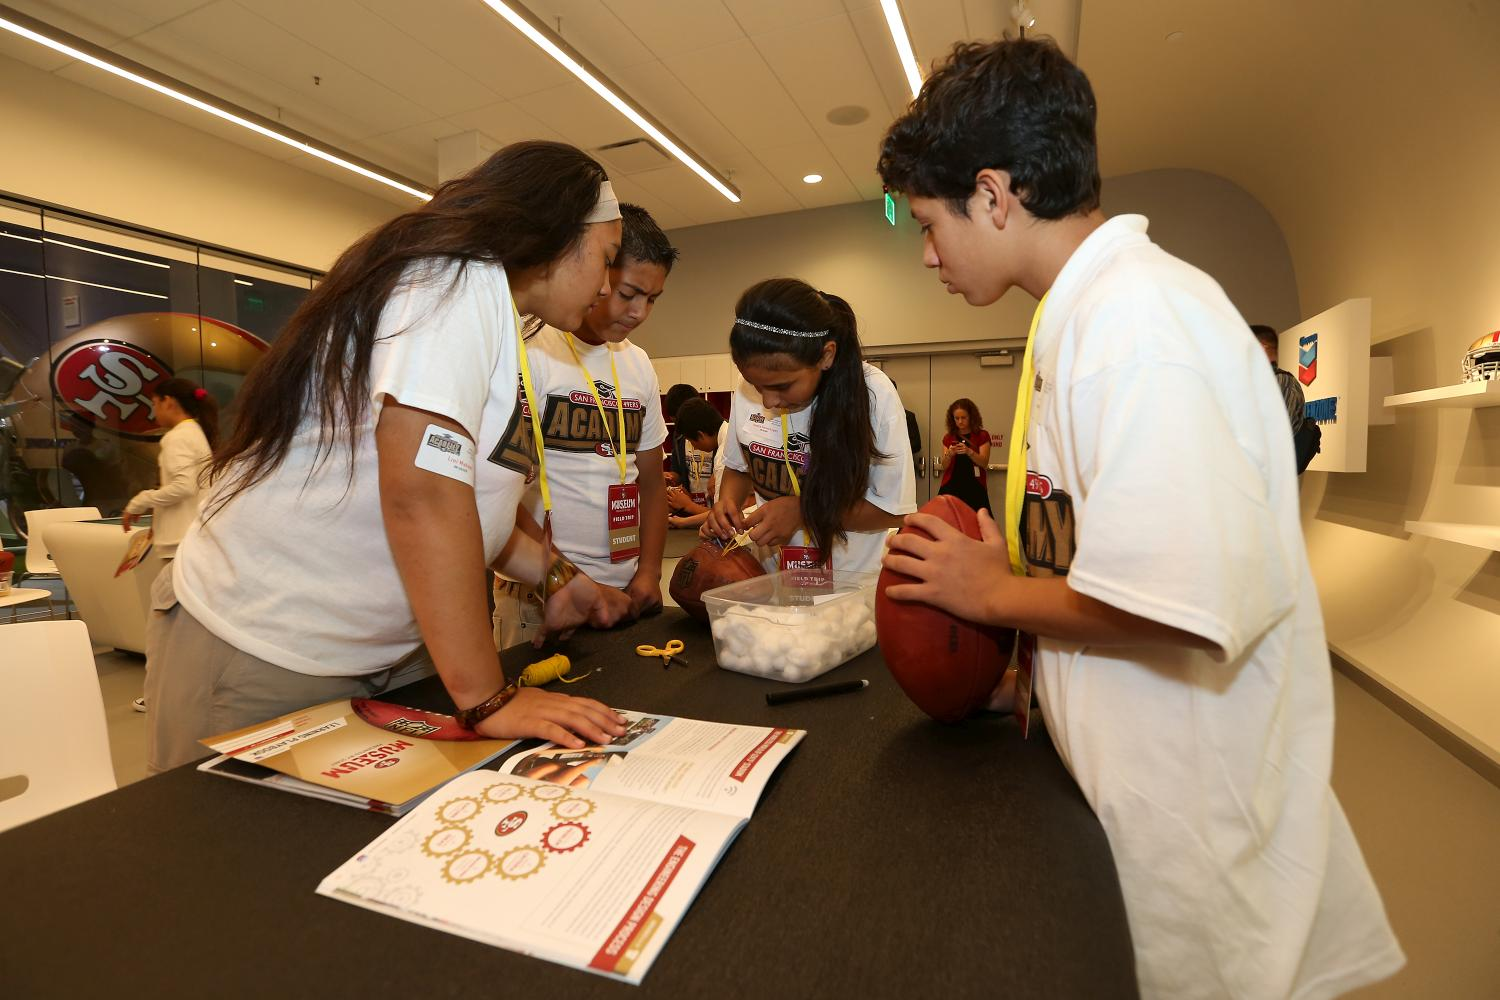 Students assemble a football at the 49ers STEM Leadership Institute at Levi's Stadium